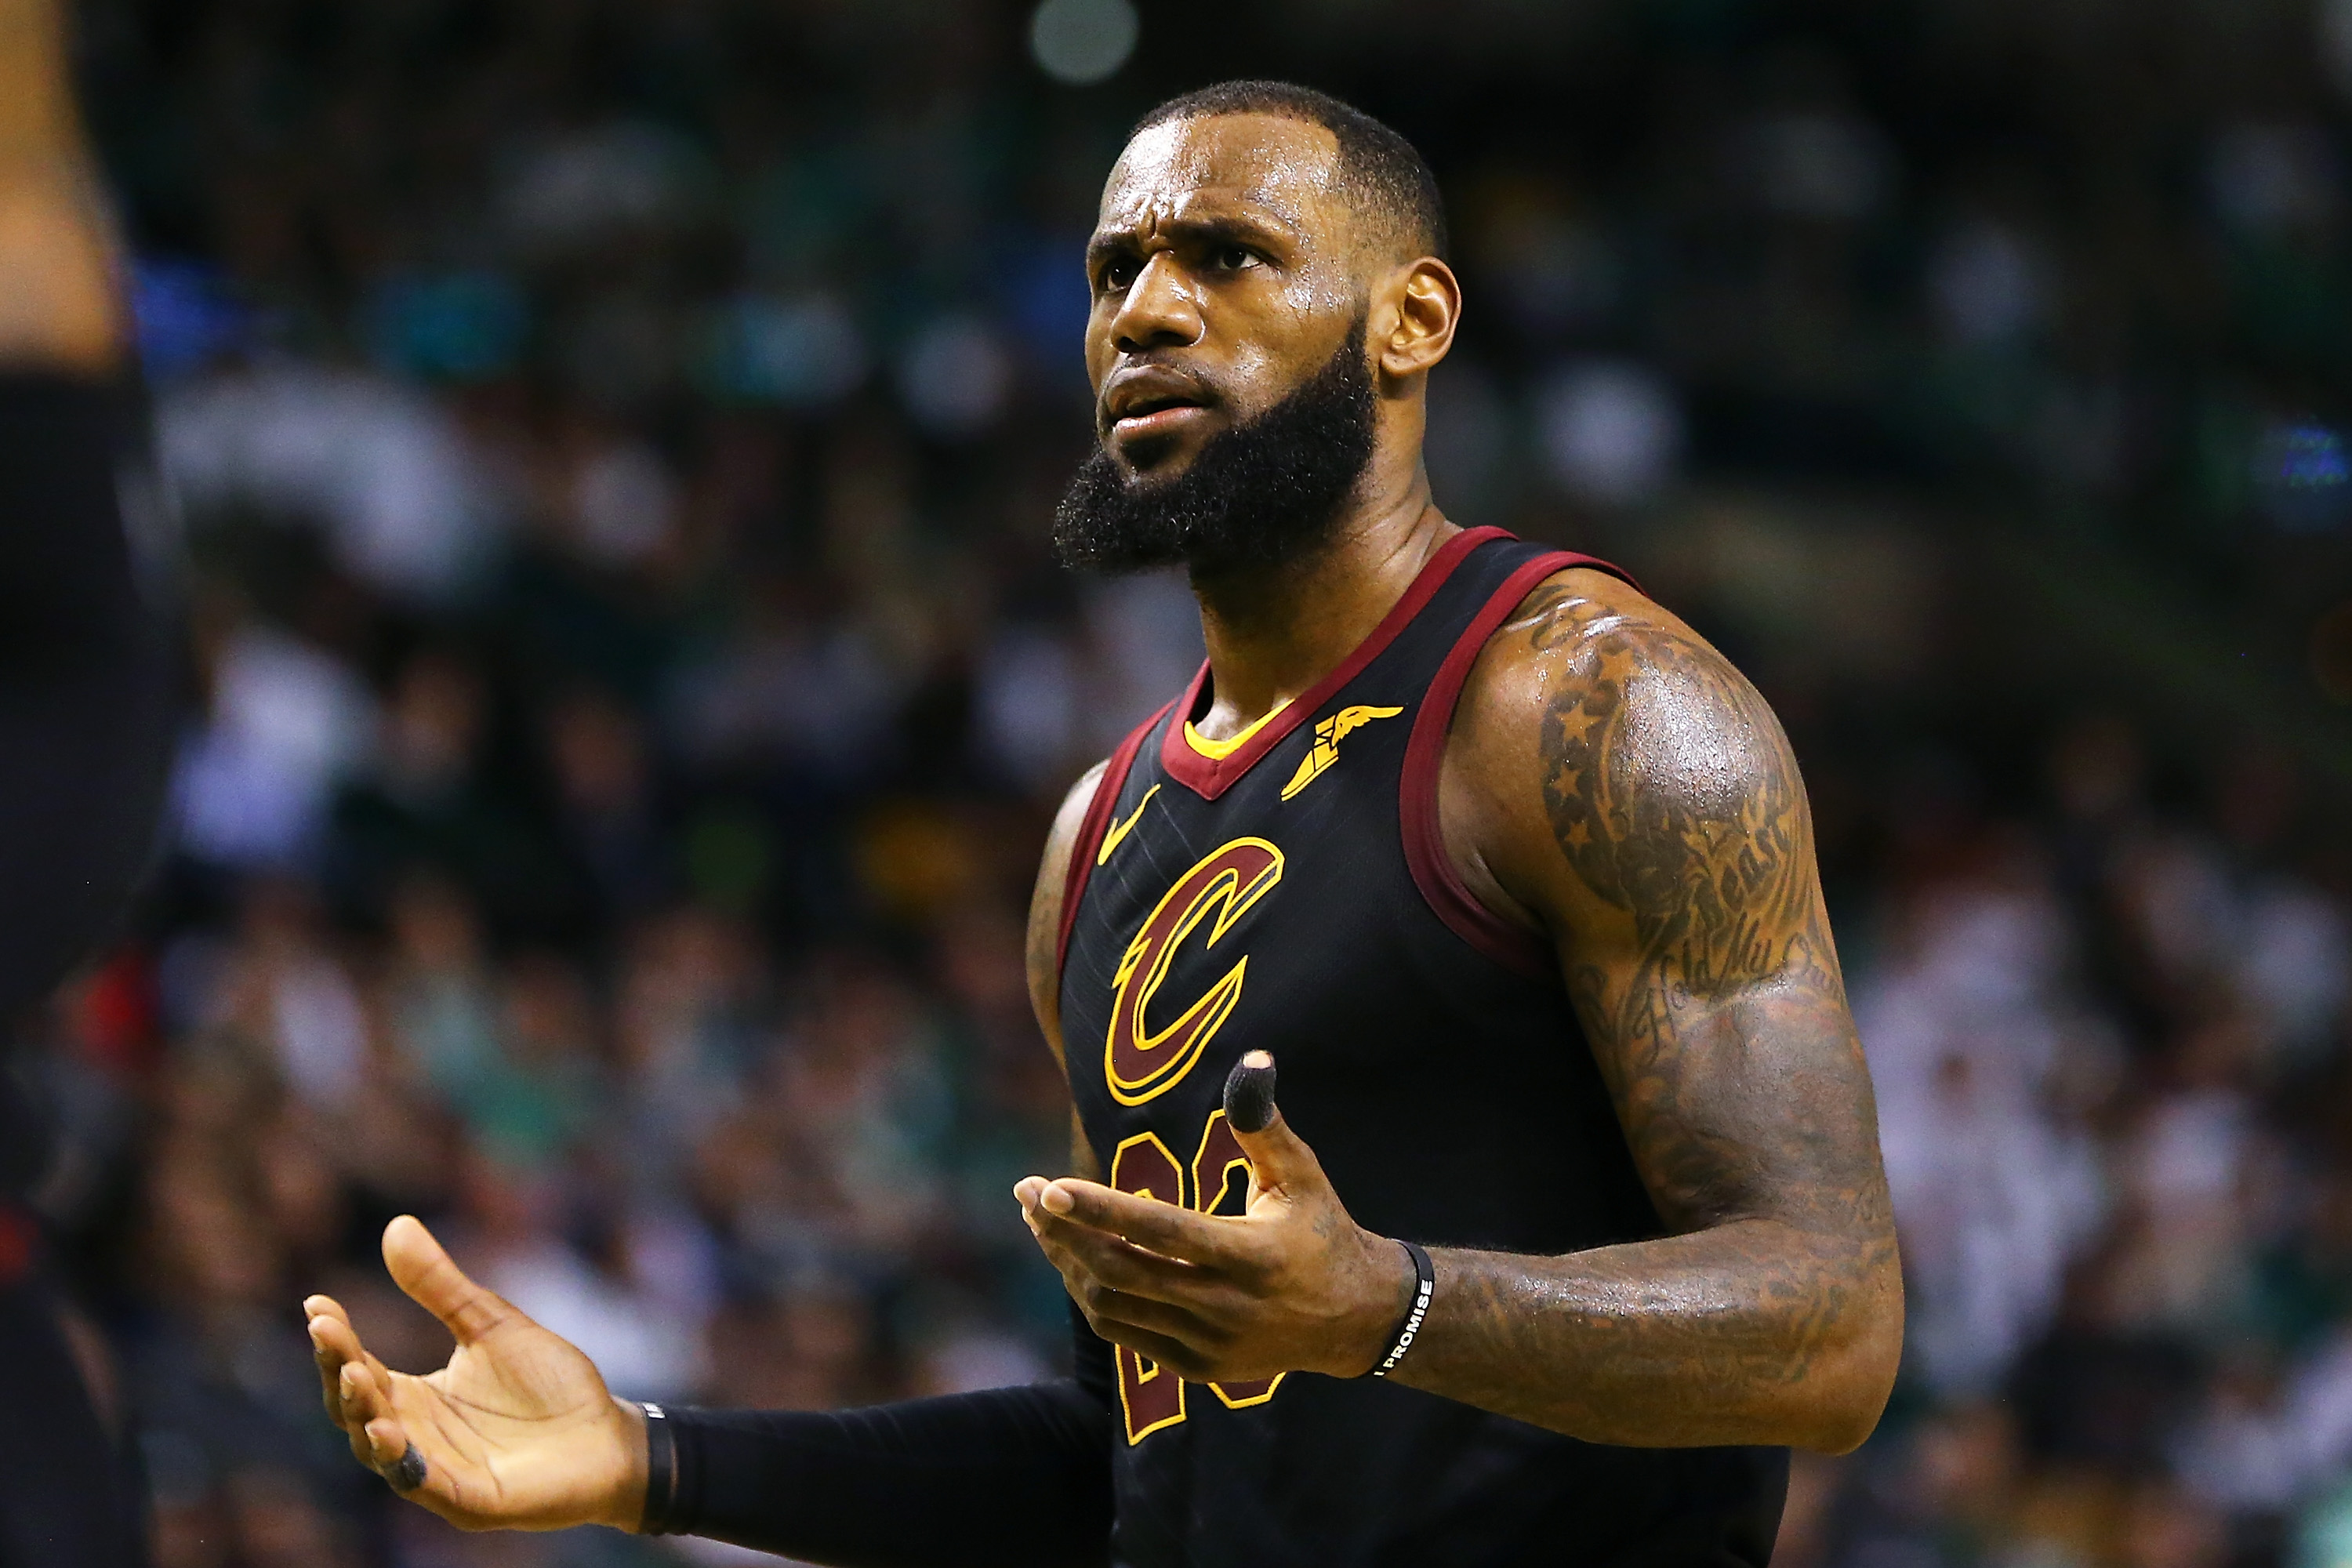 BOSTON, MA - FEBRUARY 11: Lebron James #23 of the Cleveland Cavaliers reacts in the second half during a game against the Boston Celtics at TD Garden on February 11, 2018 in Boston, Massachusetts. (Photo by Adam Glanzman/Getty Images)